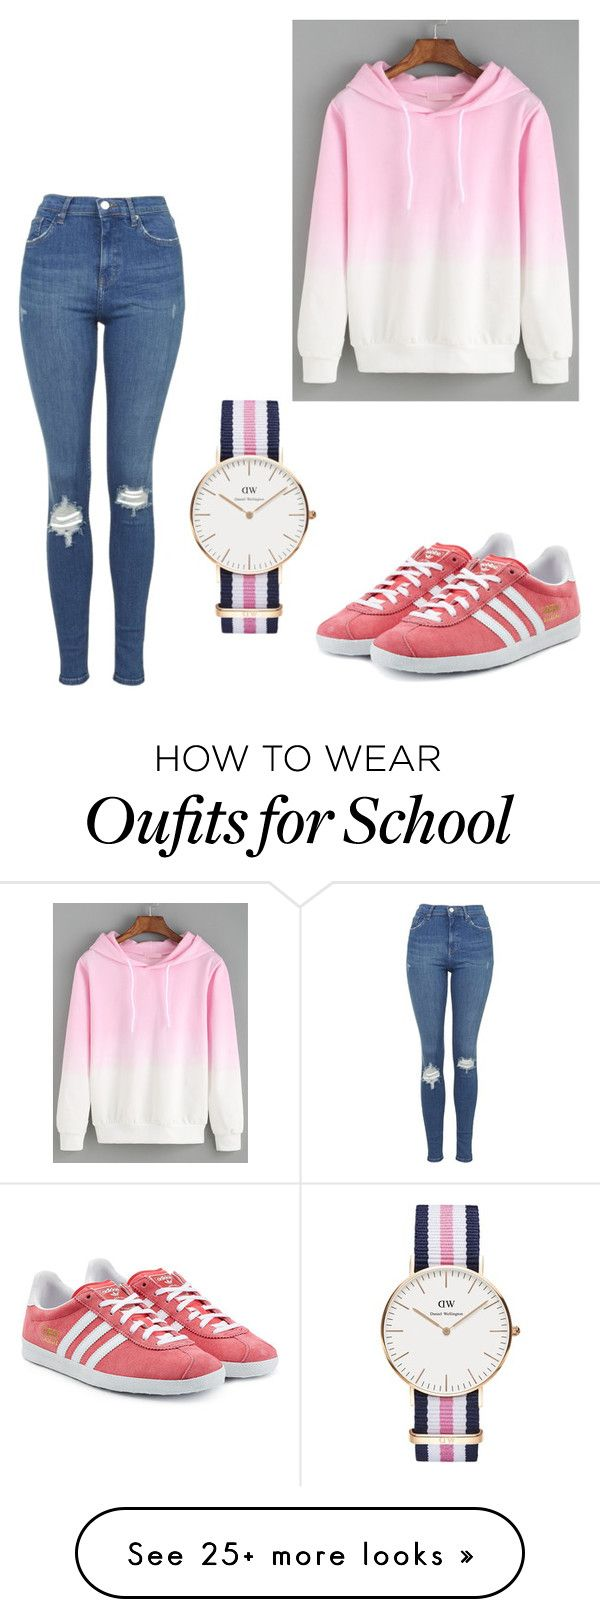 I don't really like the shoes. But the jeans and the sweatshirt are cute. Polyvore